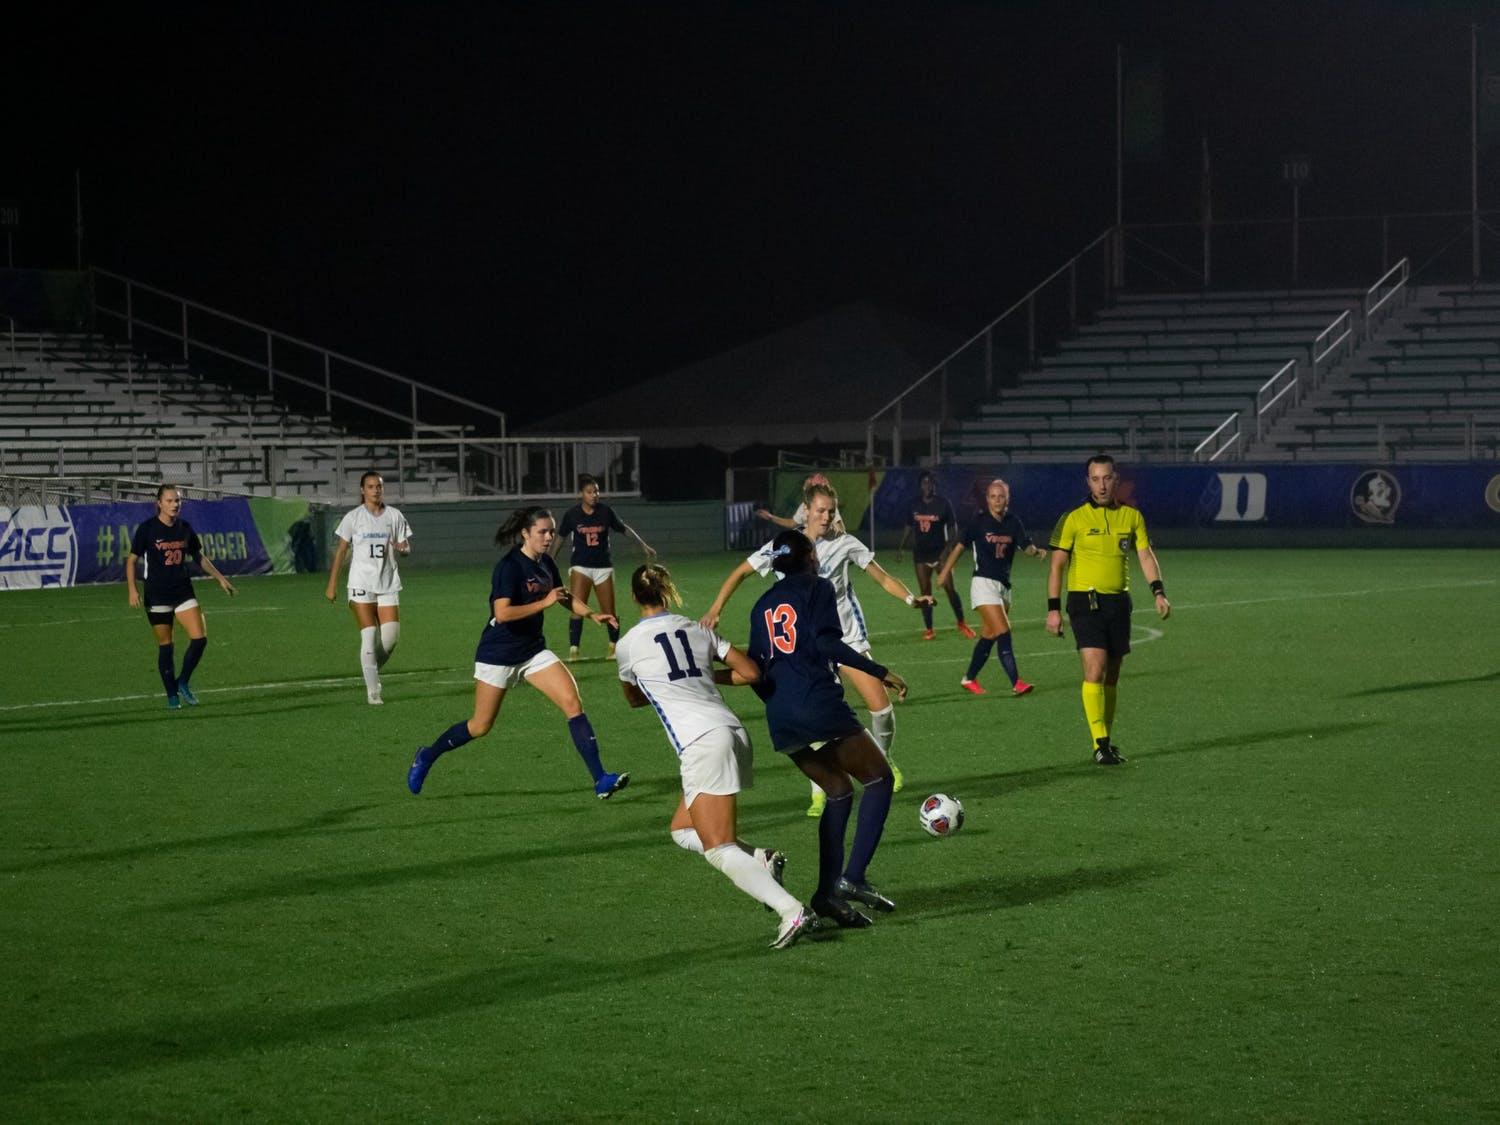 Virginia players go up against UNC players at the women's soccer game at Dorrance field on Friday, Nov. 13, 2020. UNC beat Virginia 2-0 in the ACC semifinal game.